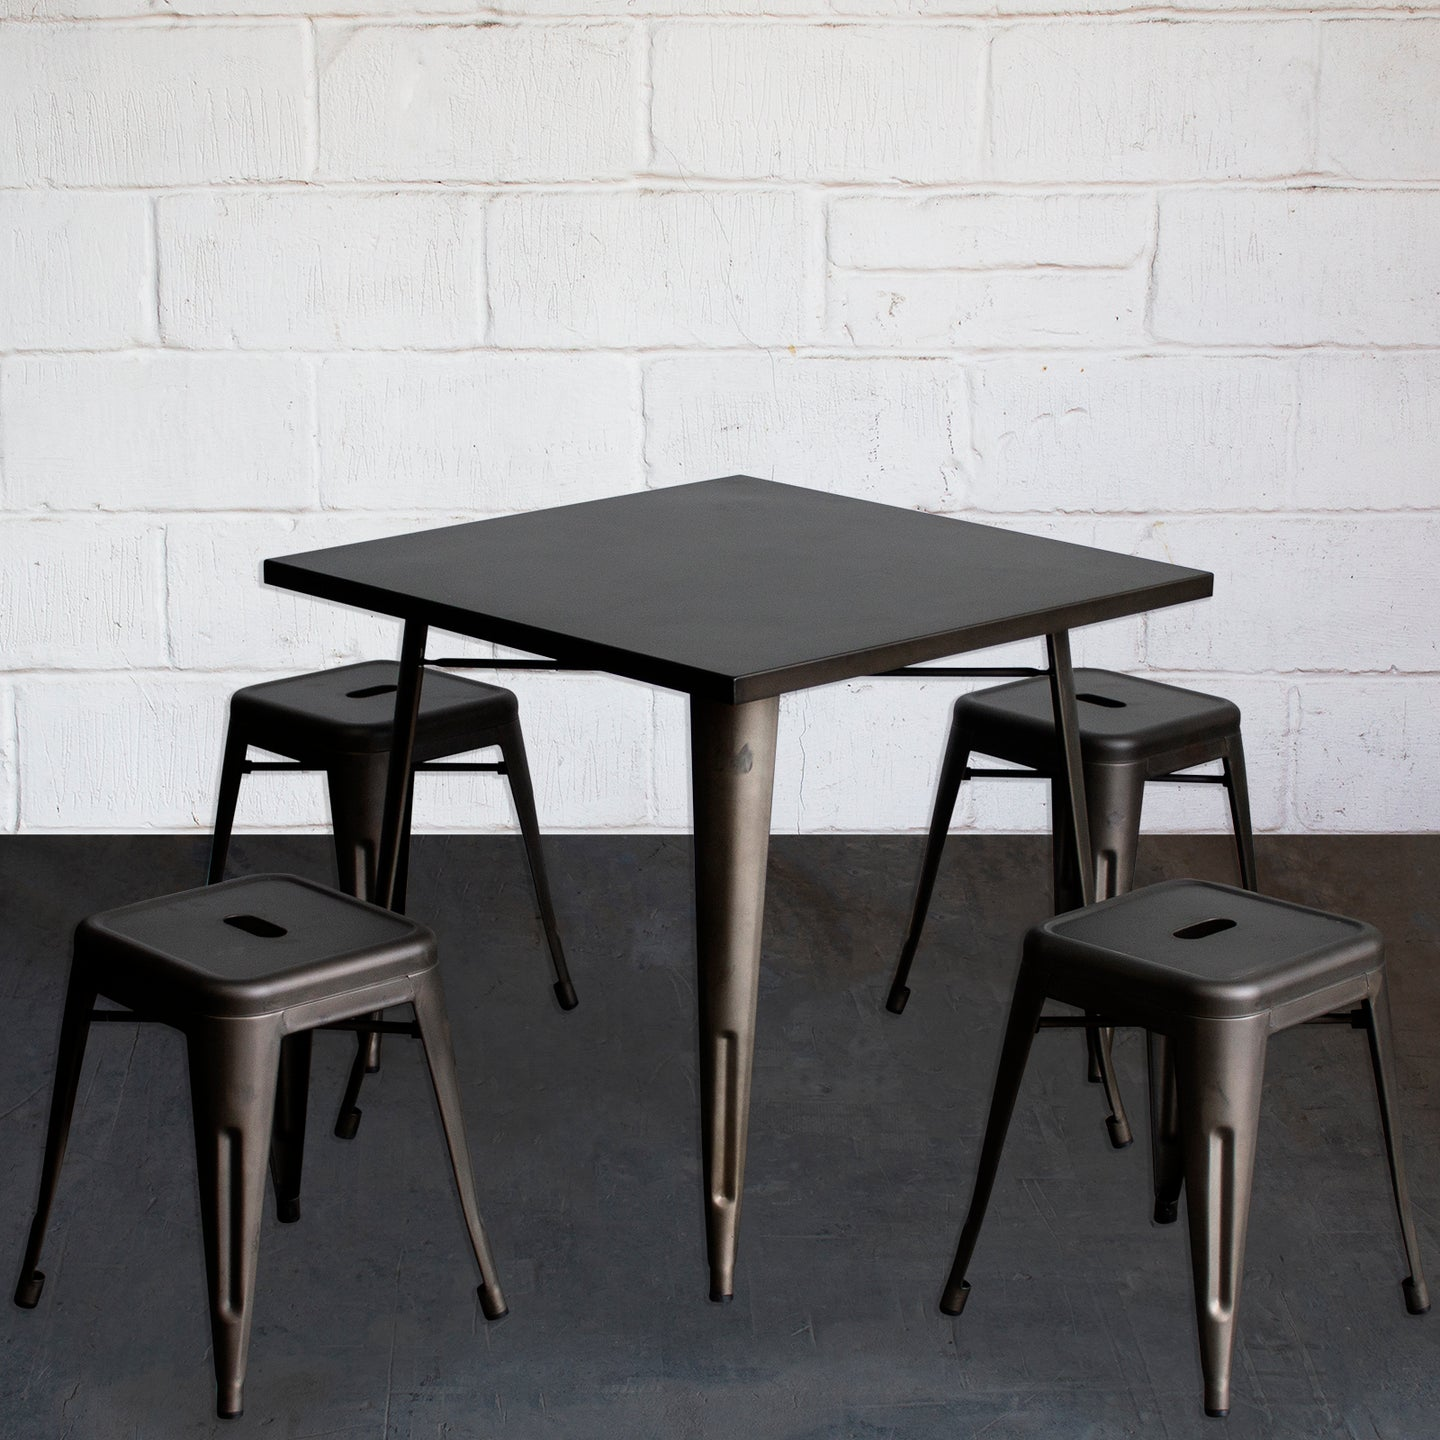 5PC Belvedere Table & Castel Stool Set - Gun Metal Grey